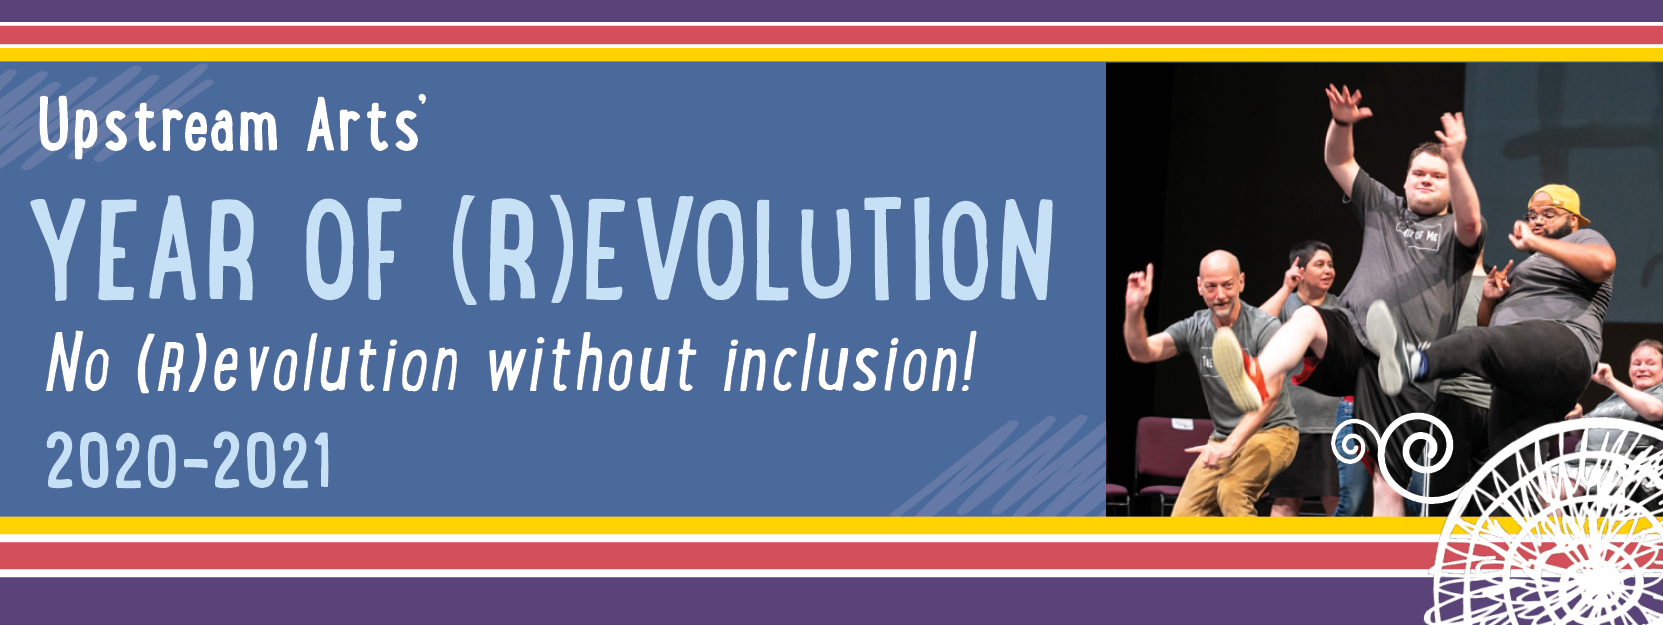 Bold banner with rainbow stripes and the text: Upstream Arts' Year of (R)evolution 2020-2021 No (R)evolution without inclusion! A photo of Teaching Artist Theo doing a high kick with Art of Me participants onstage.